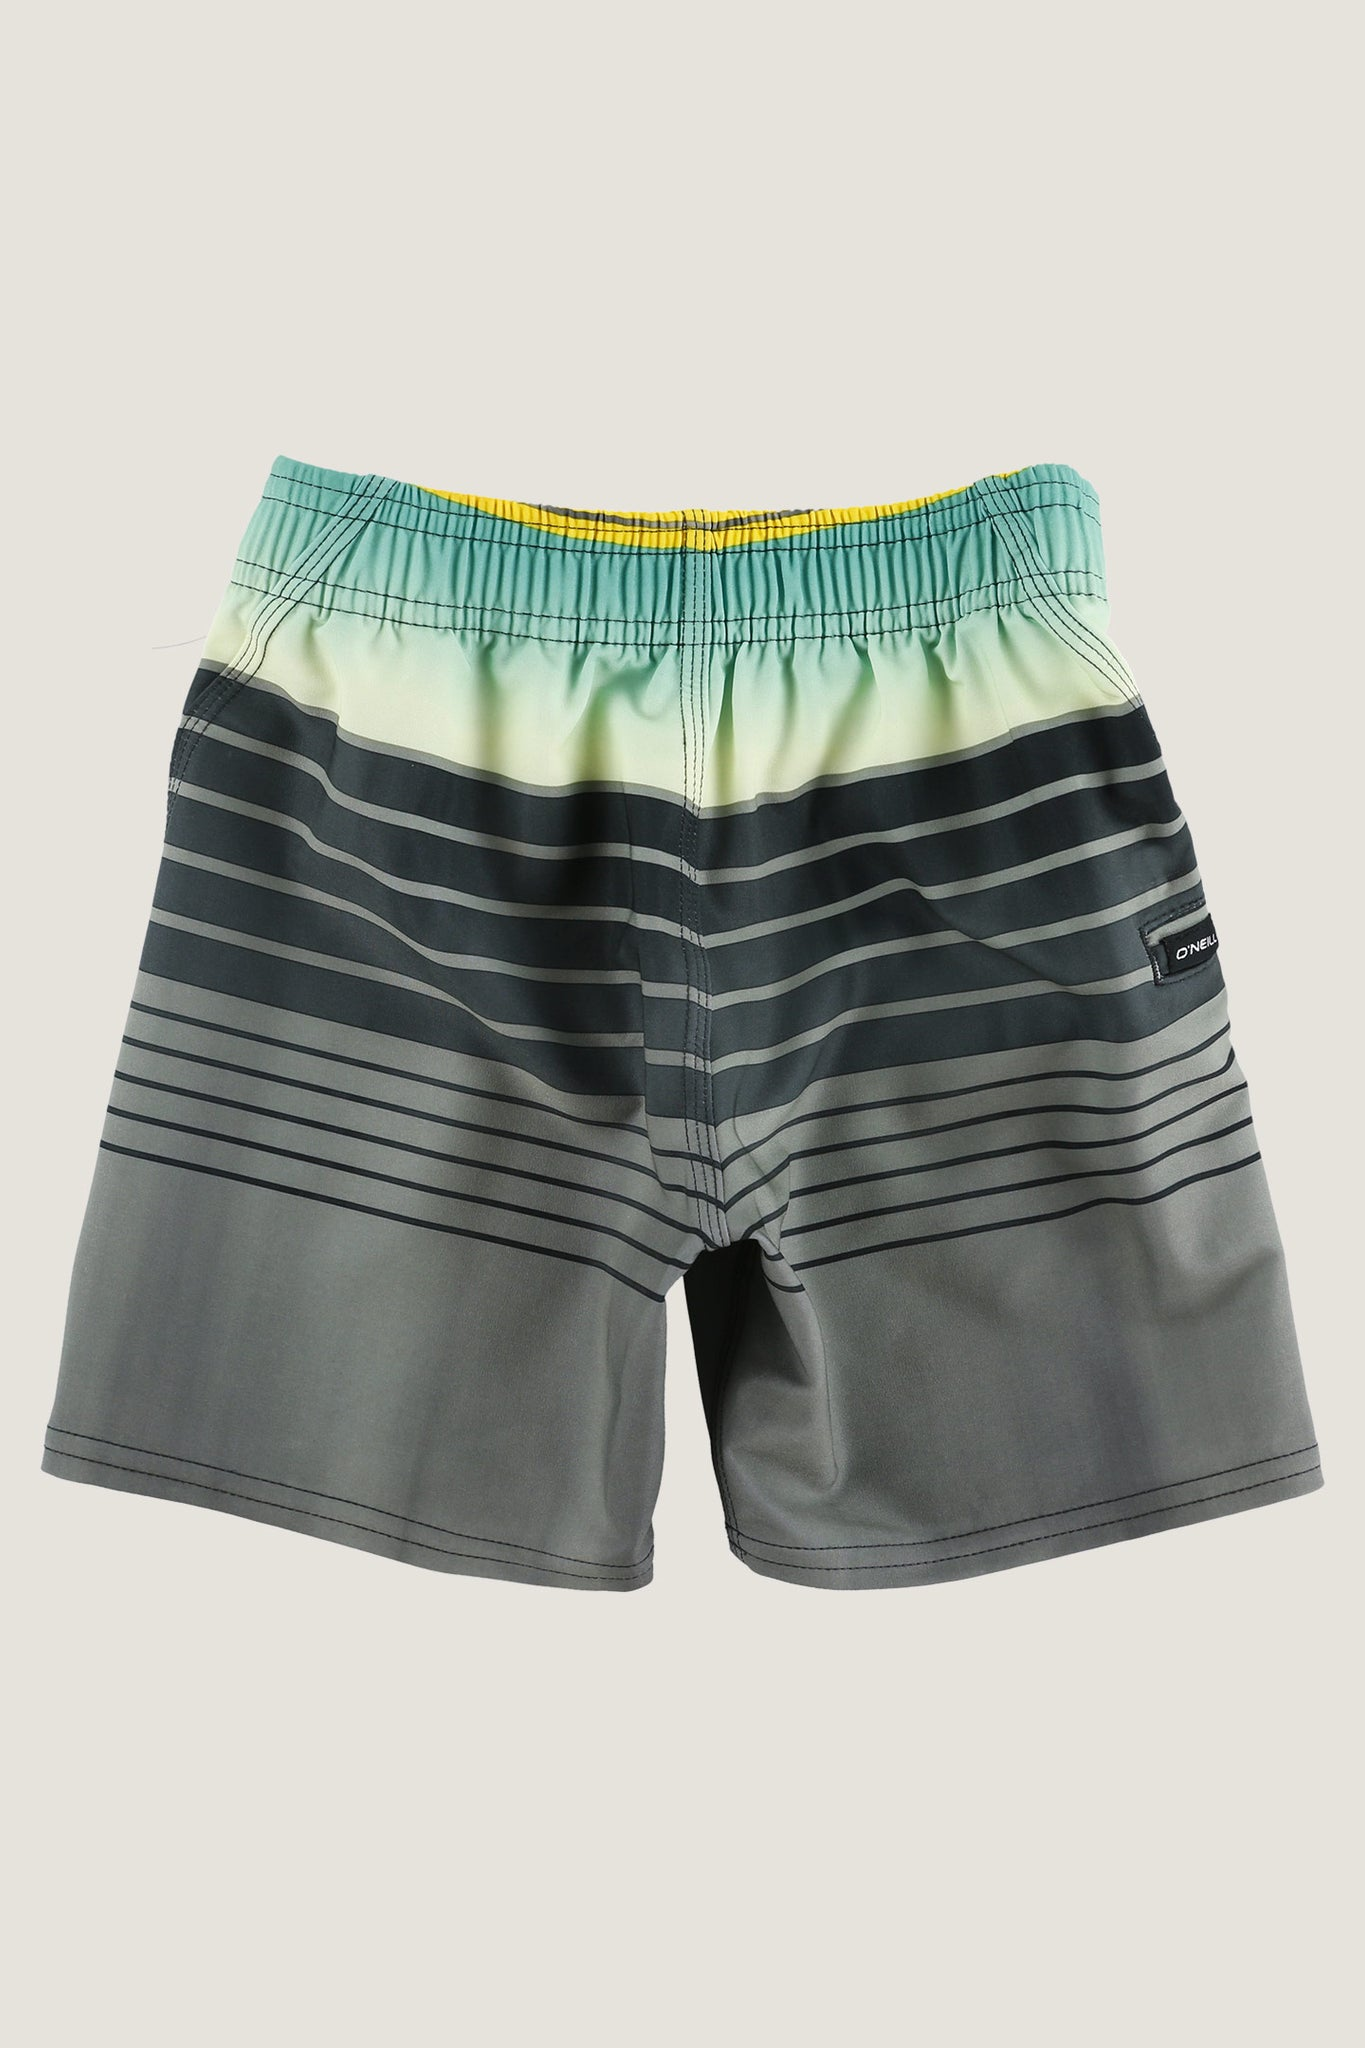 Little Boys Hyperfreak Heist Boardshorts | O'Neill Clothing USA